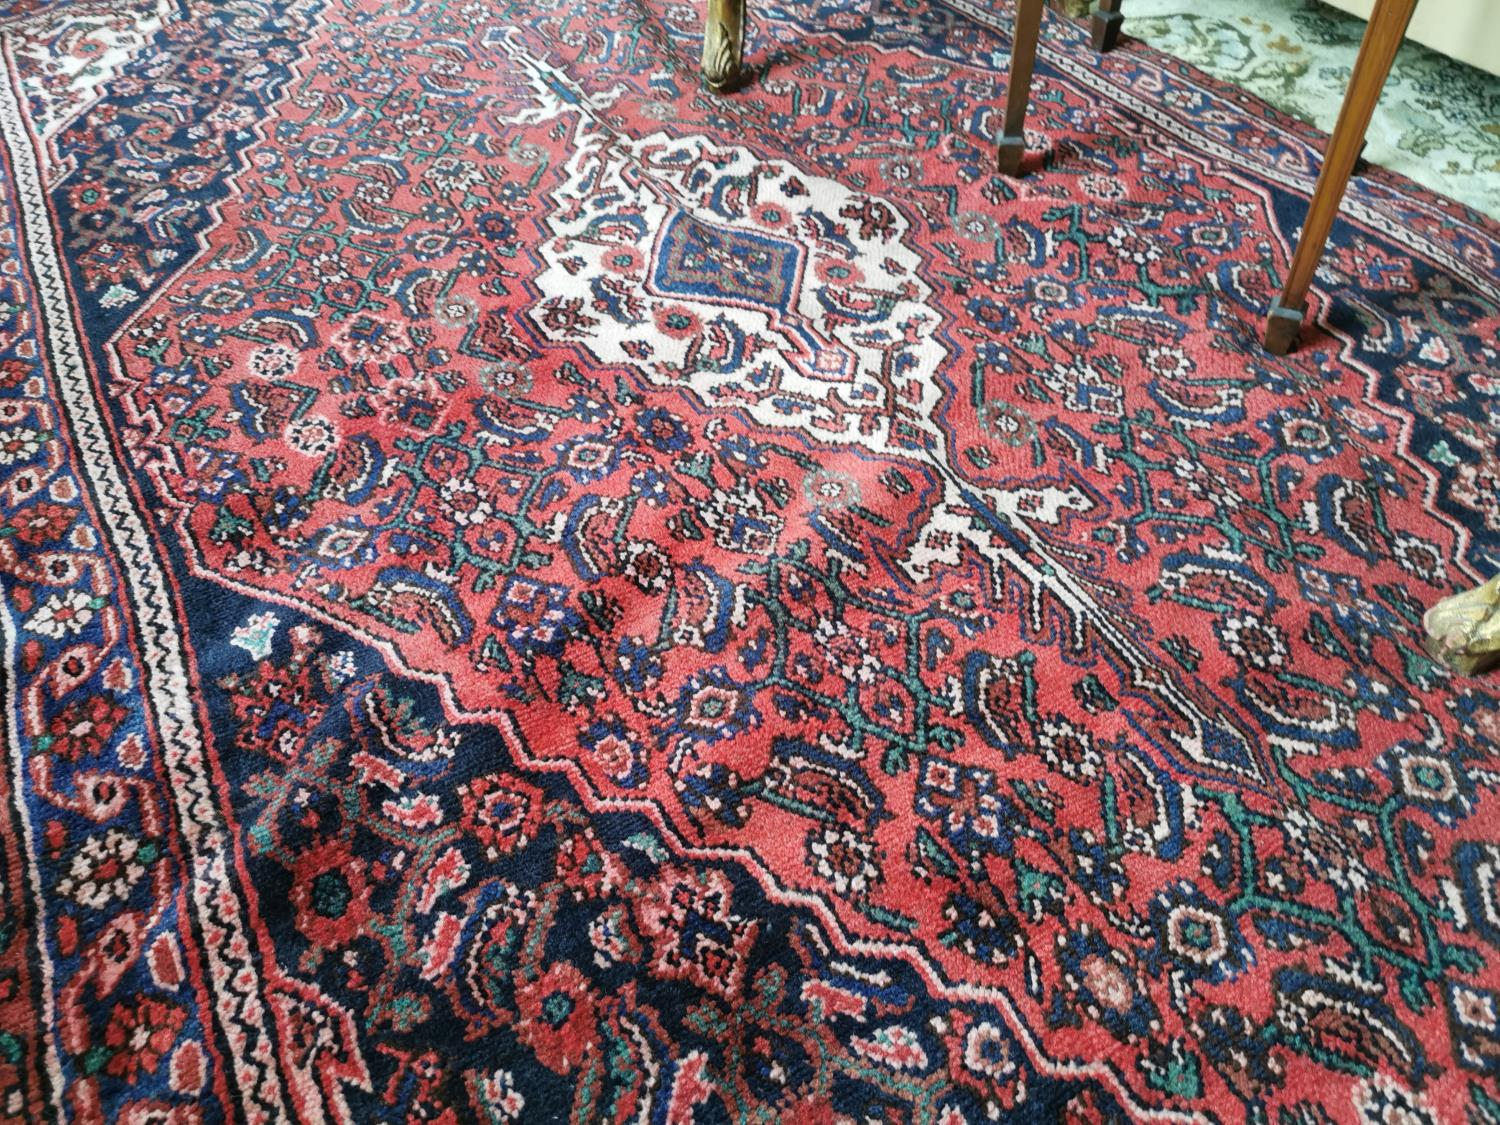 Persian hand knotted wool rug - Image 2 of 2